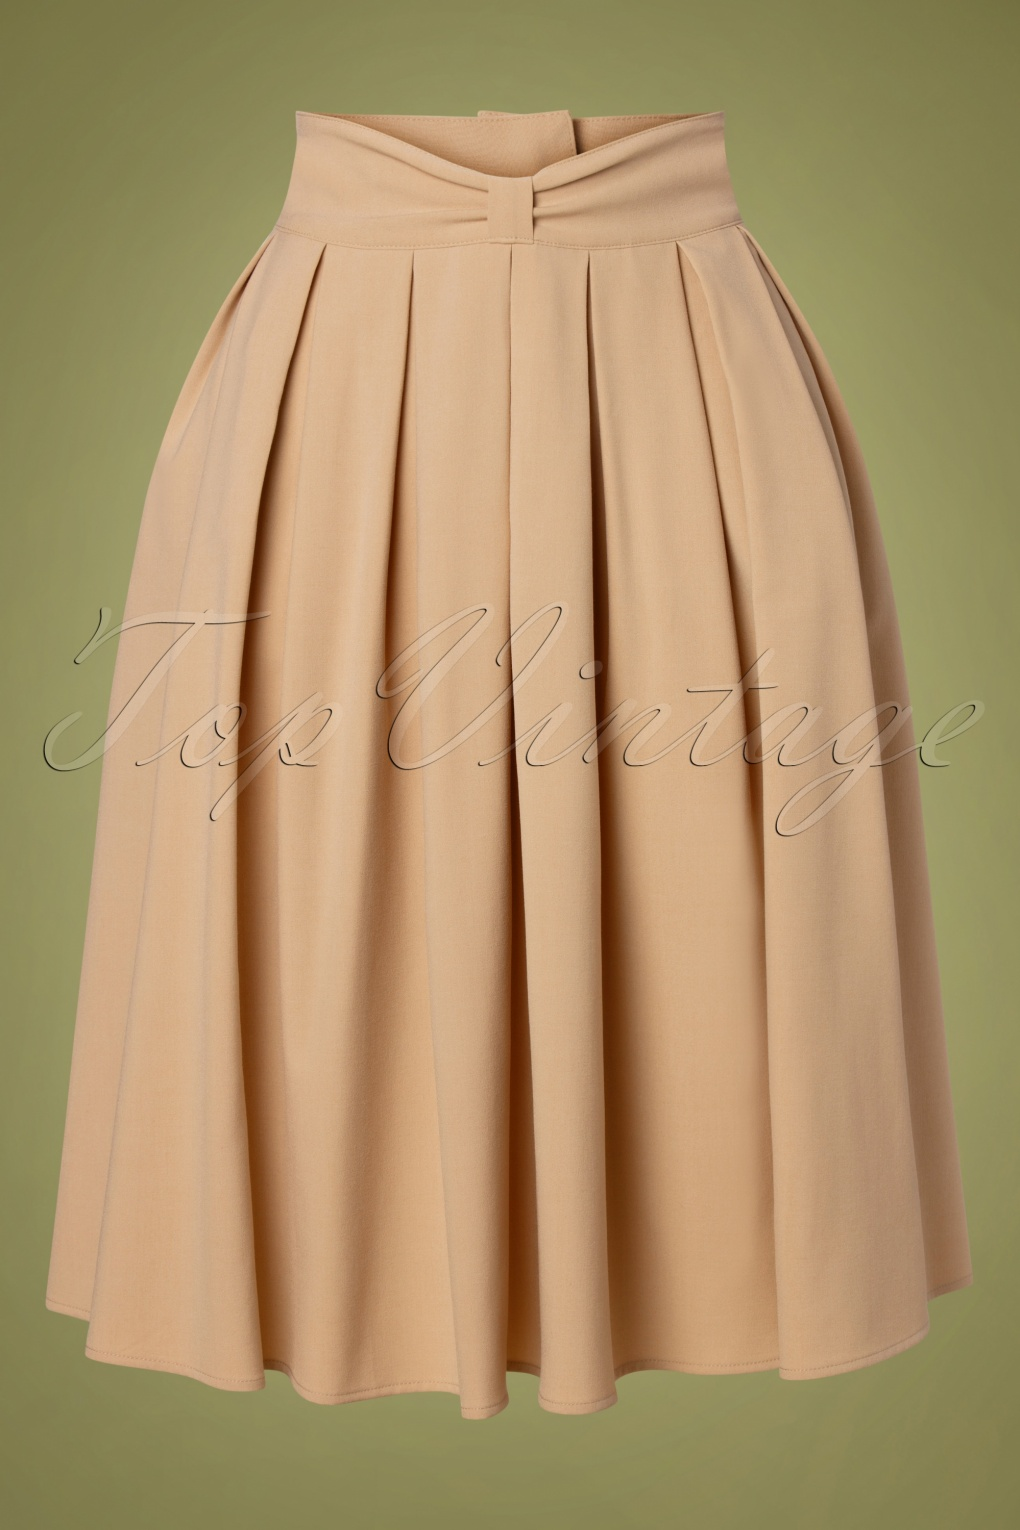 1940s Style Skirts- Vintage High Waisted Skirts 40s Bliss Swing Skirt in Beige £45.75 AT vintagedancer.com